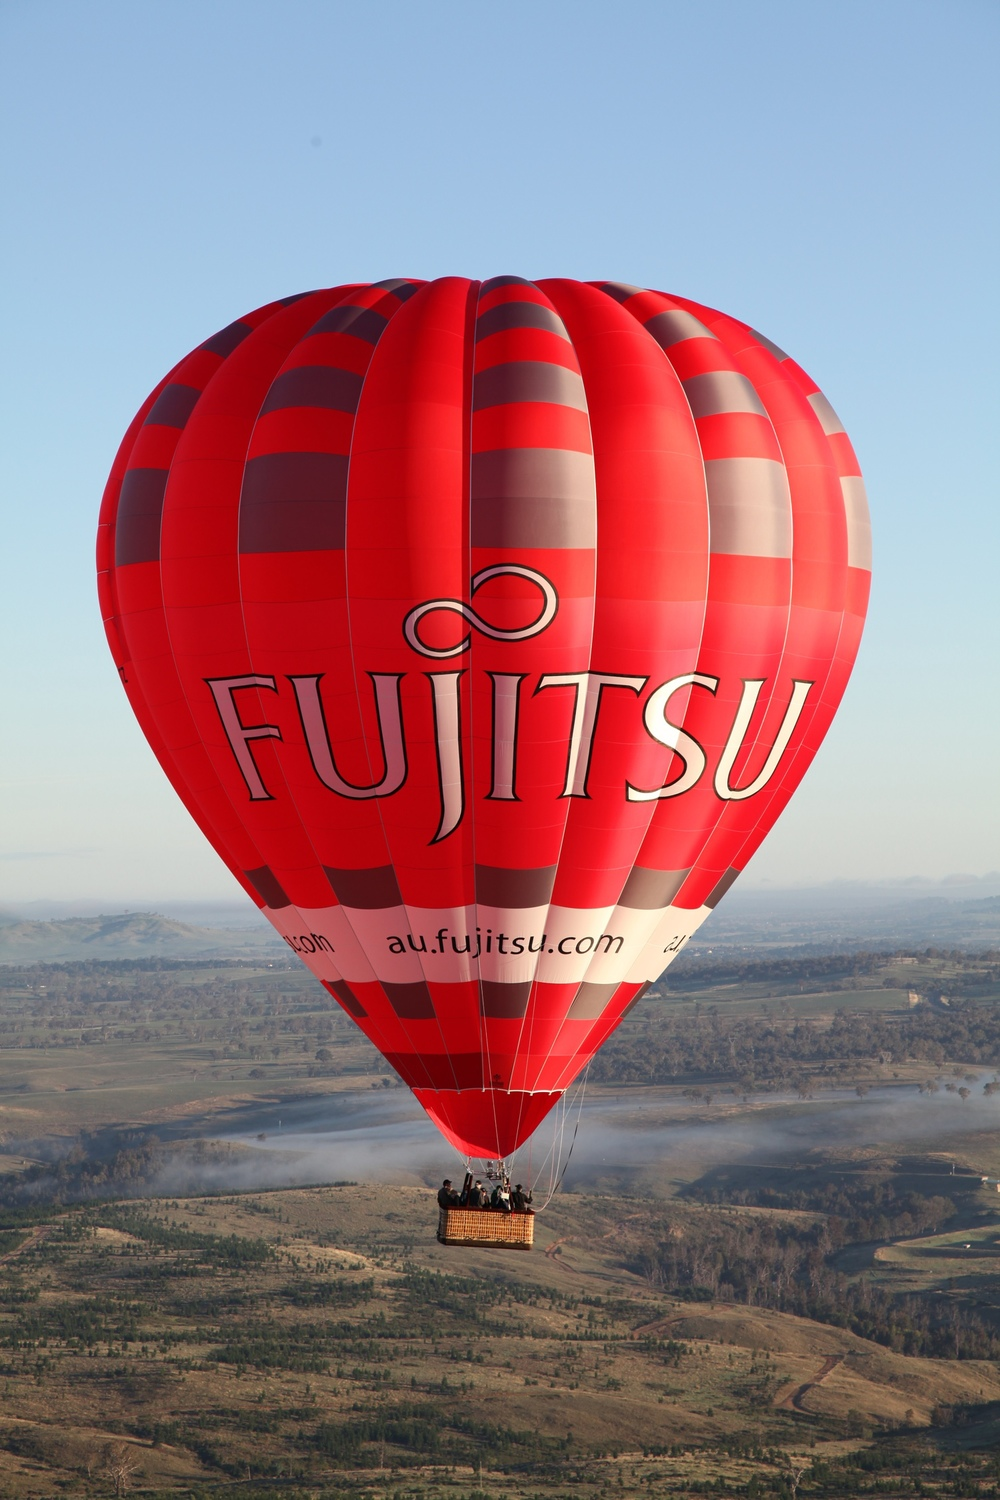 Fujitsu hot air balloon over countryside.jpeg